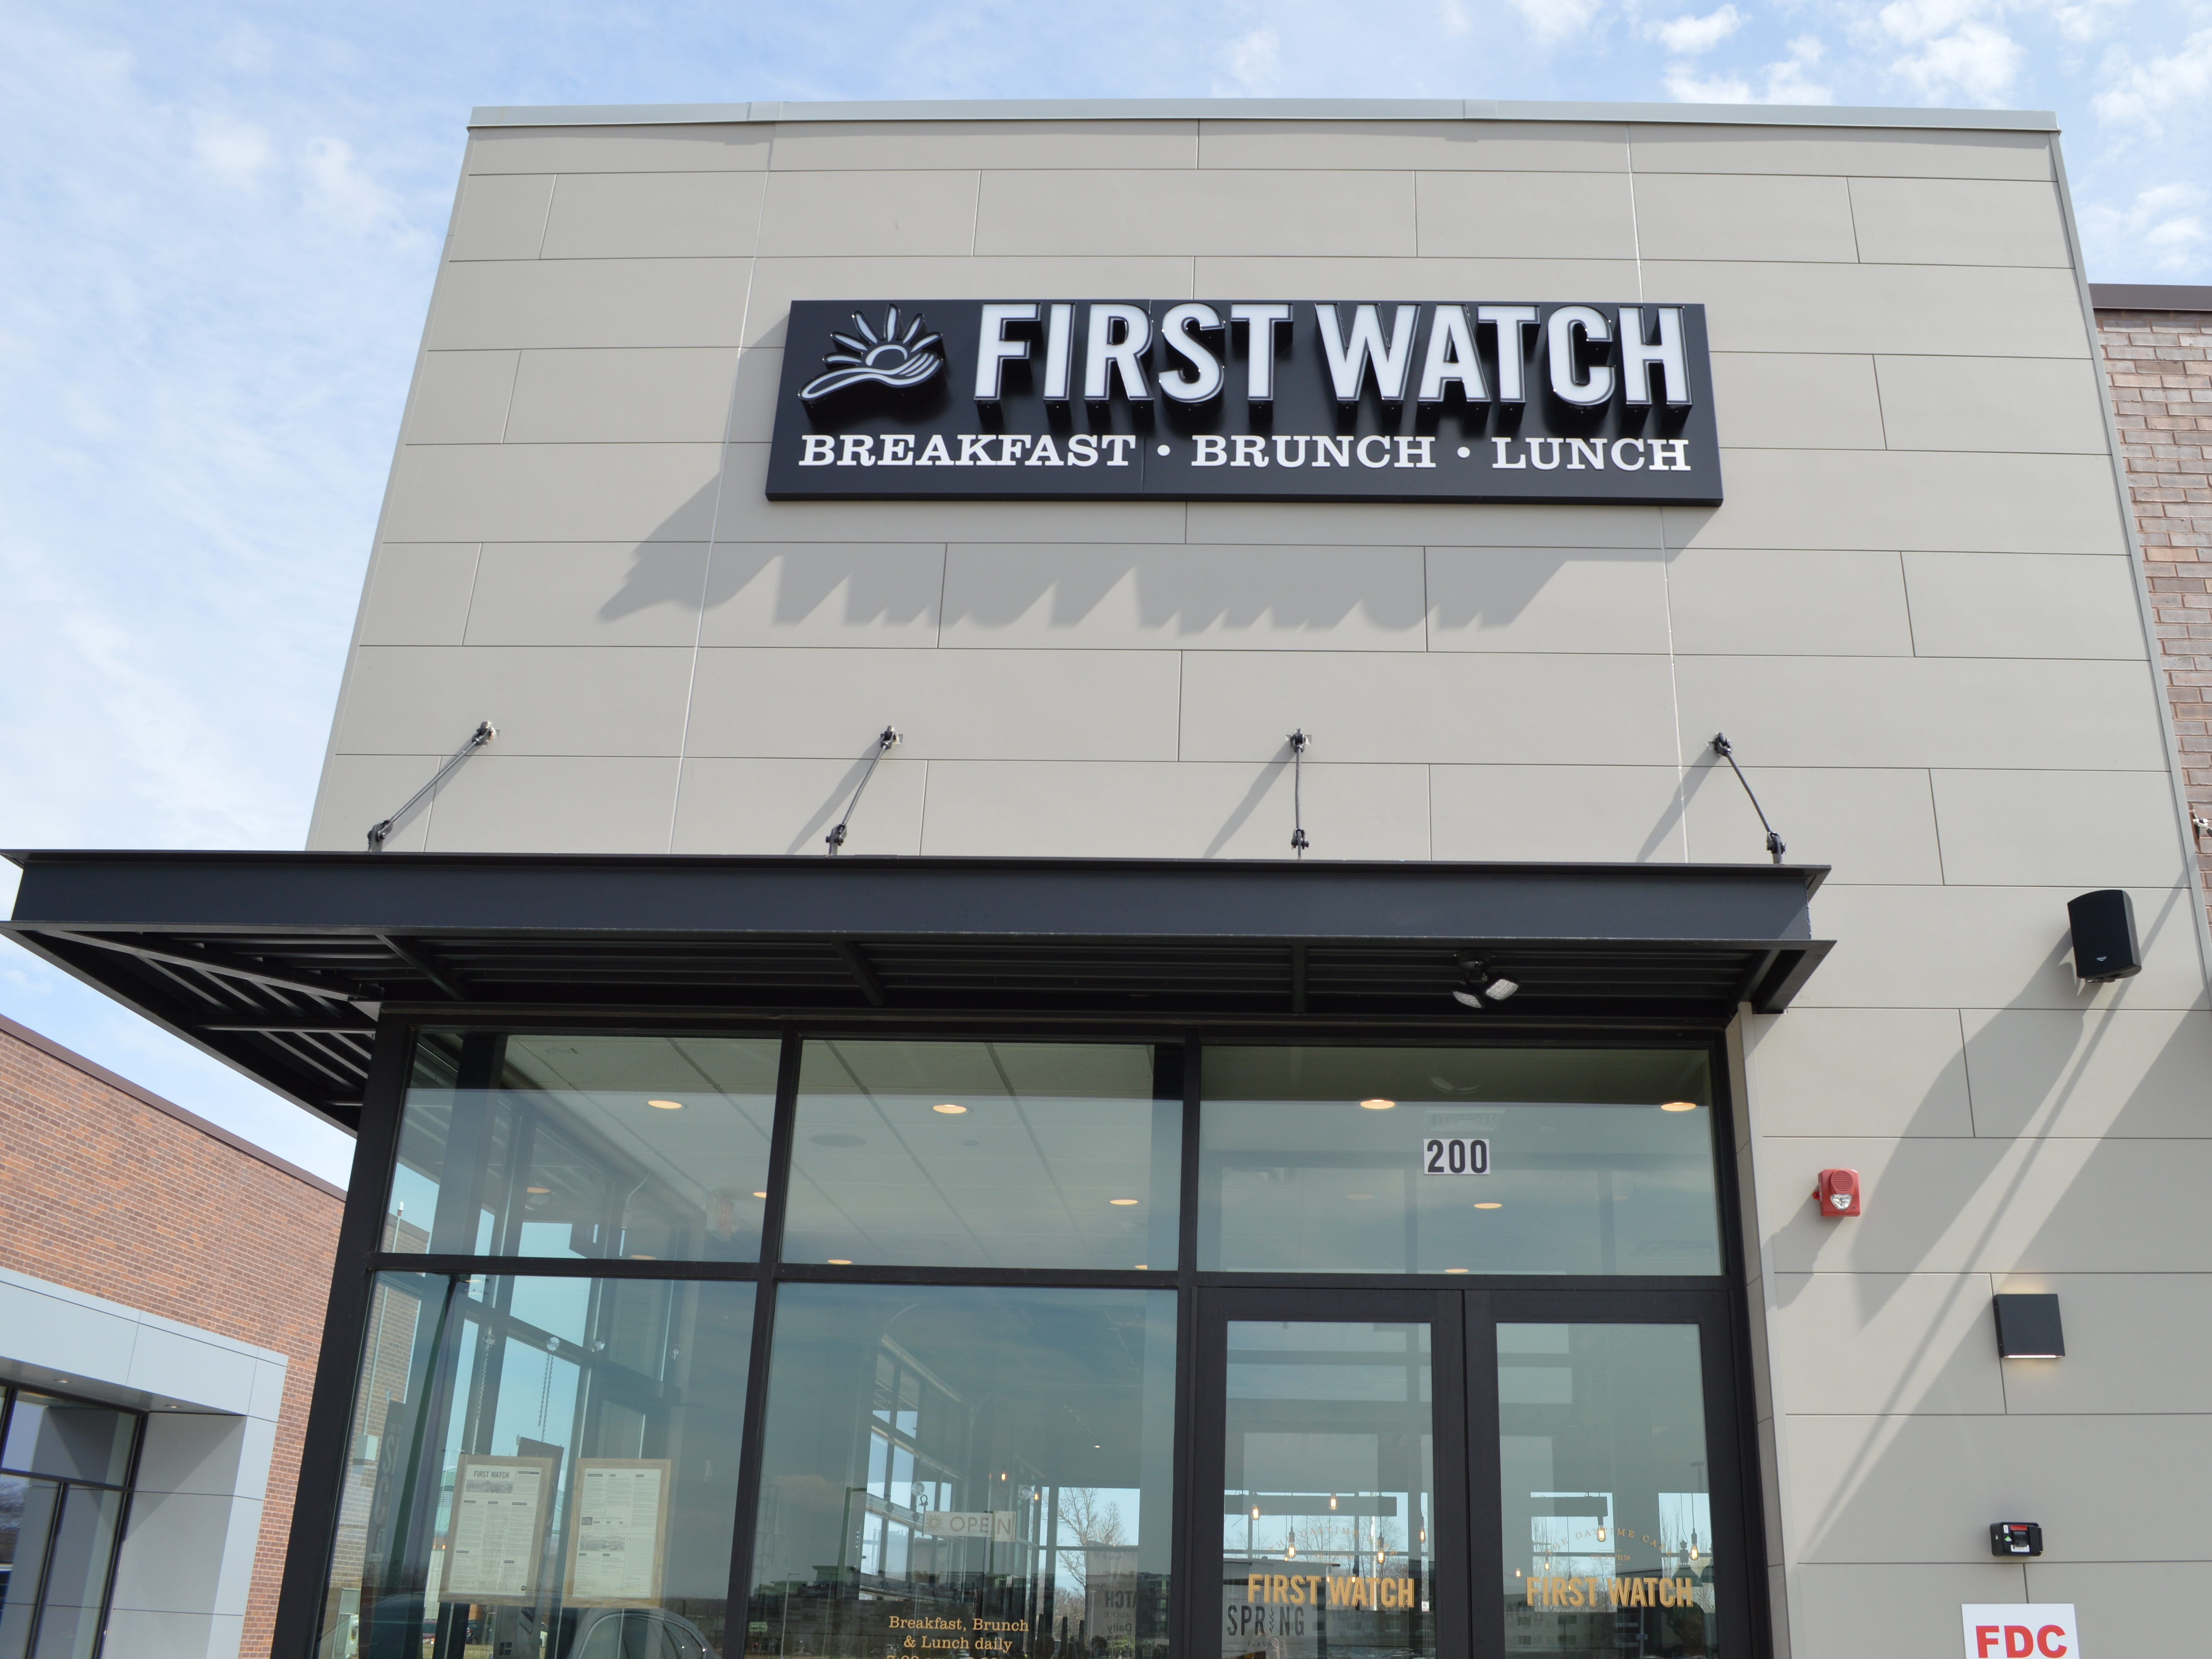 First Watch is located at 120 W. Town Square Way, Suite 200, Oak Creek.